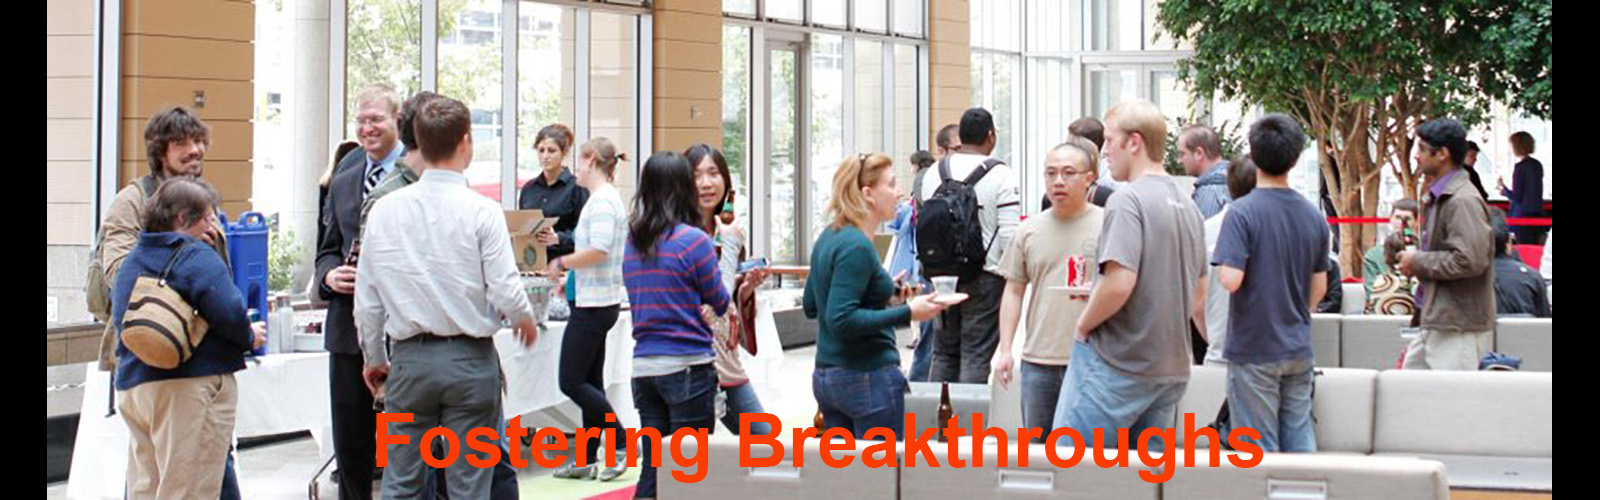 Students-at-Fall-Conference Homepage hero image